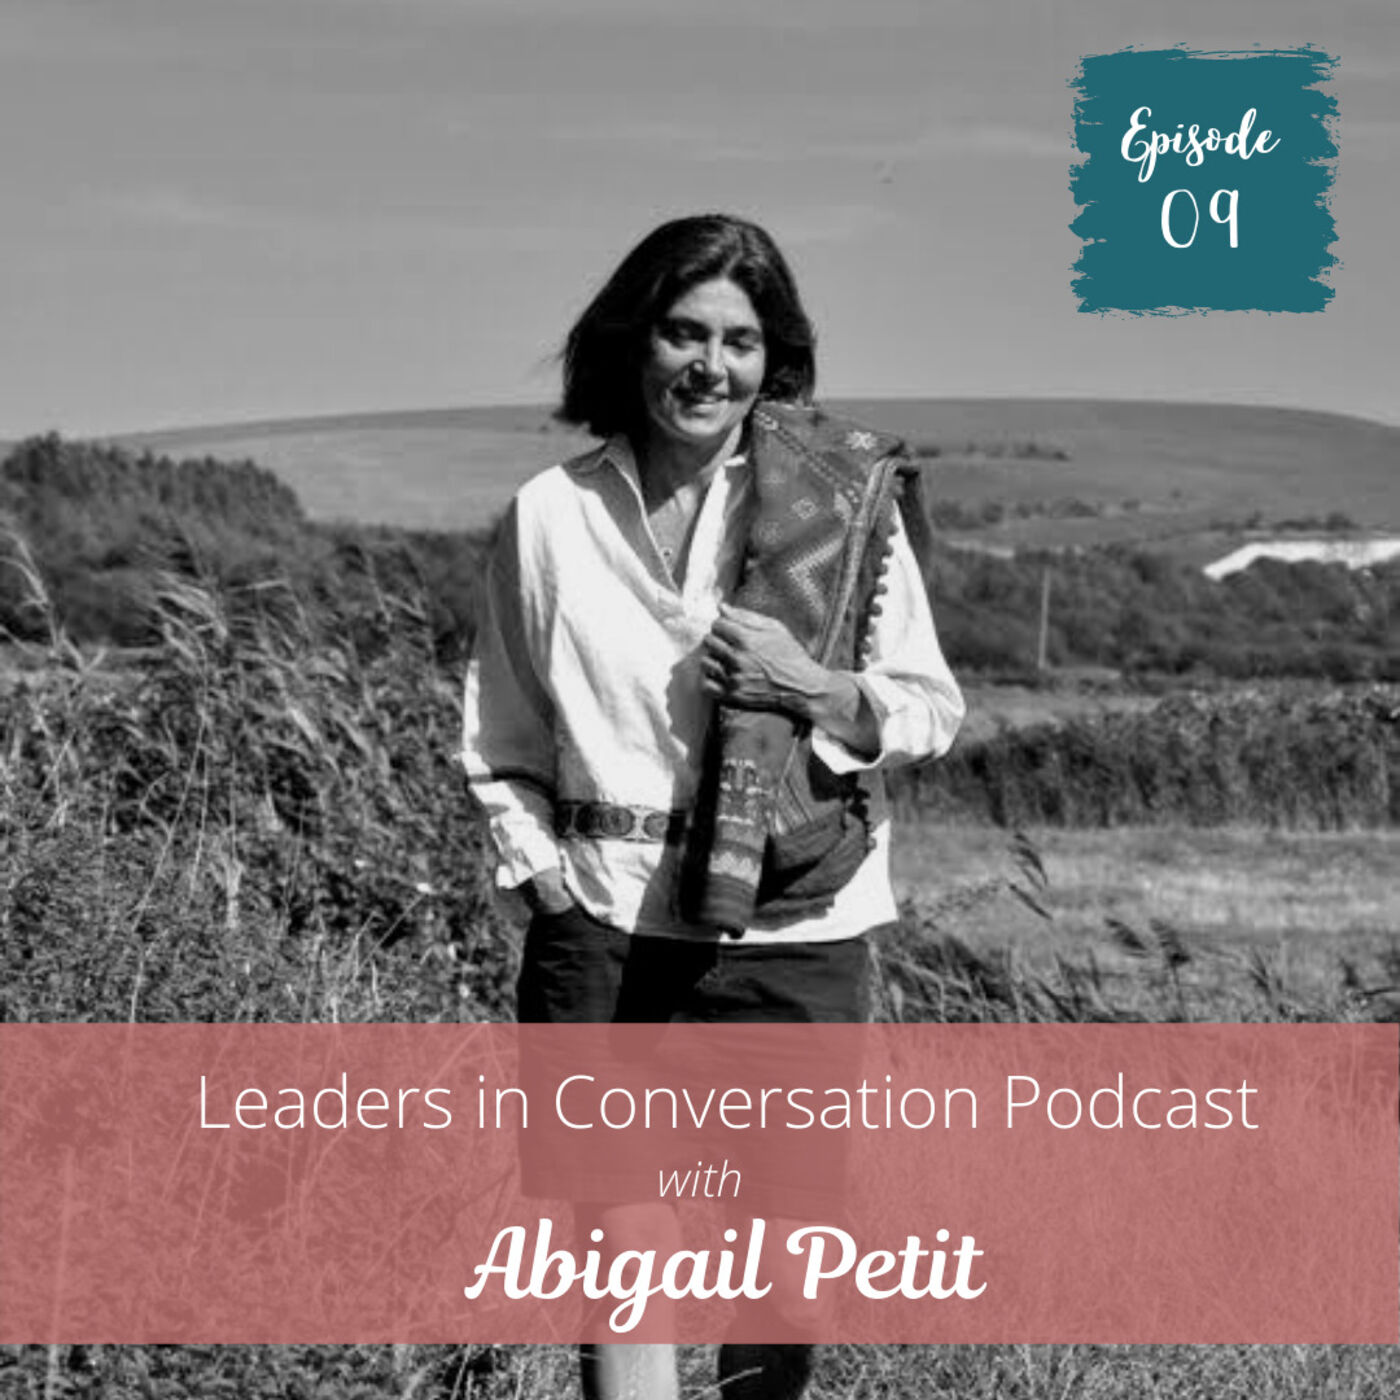 Anni Townend in Conversation with Abigail Petit, Founder of Abigail's Drapery